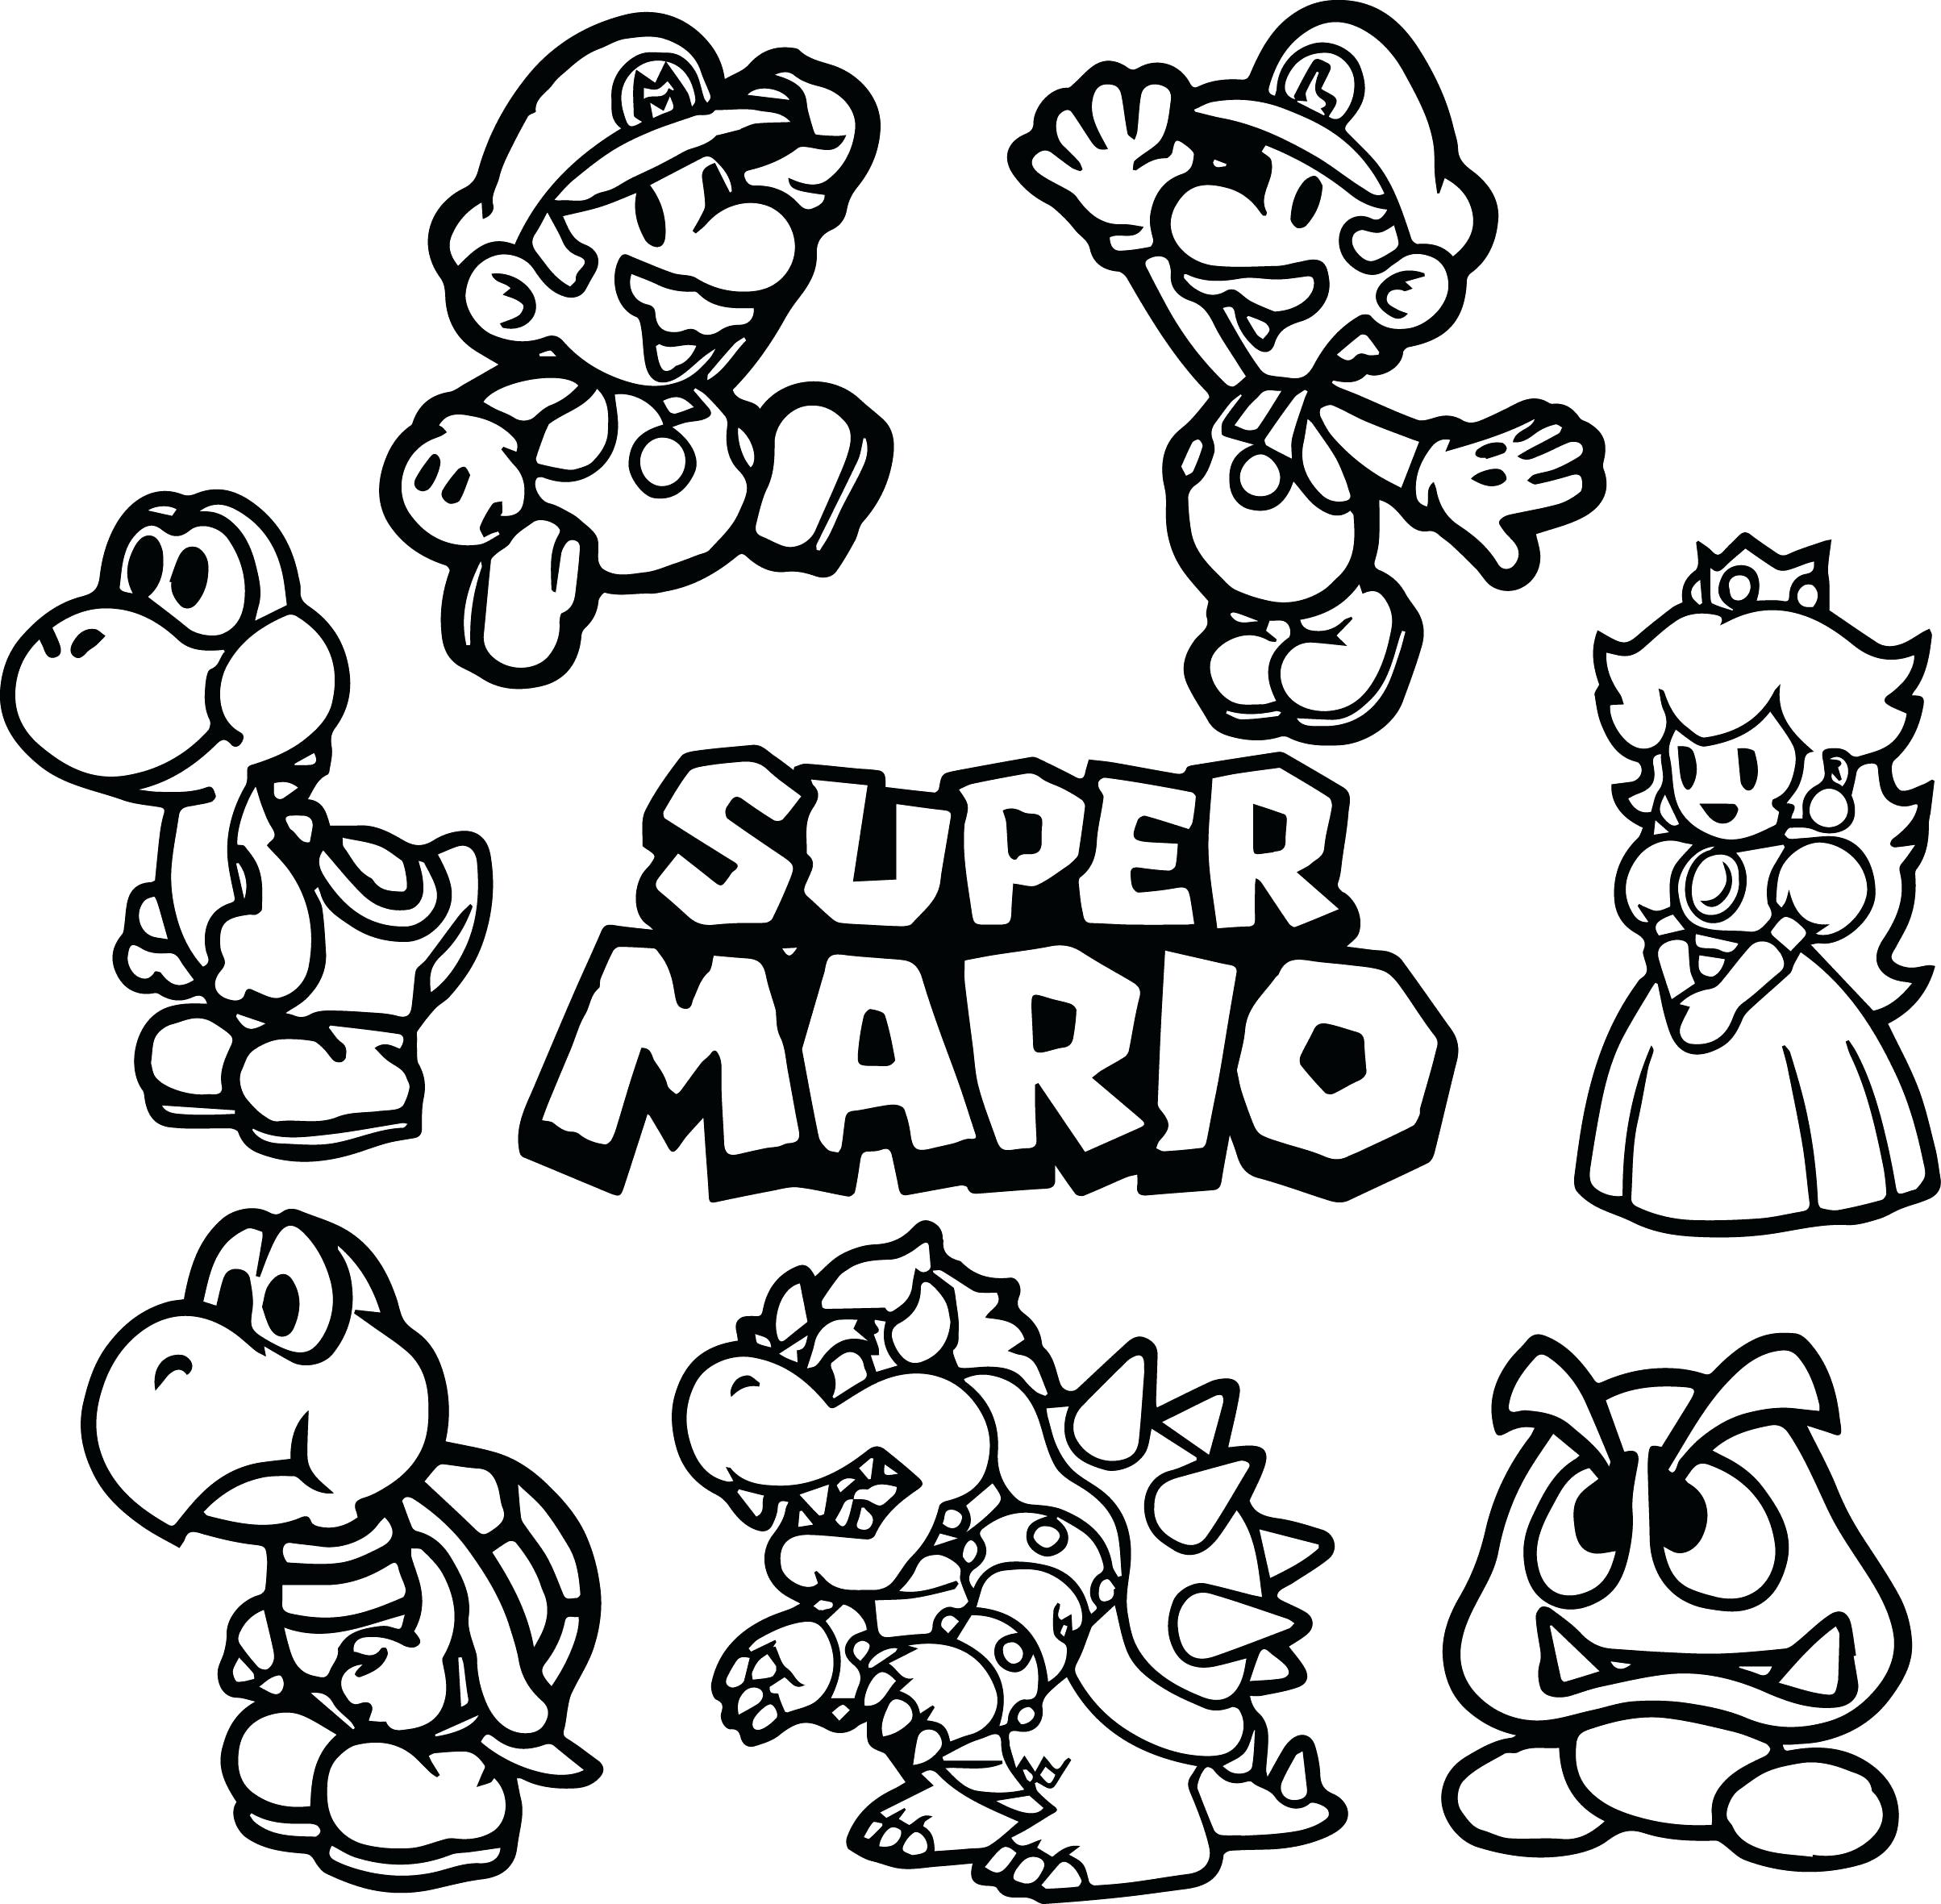 2407x2361 Page 96 Super Mario Coloring Pages. John Deere Coloring